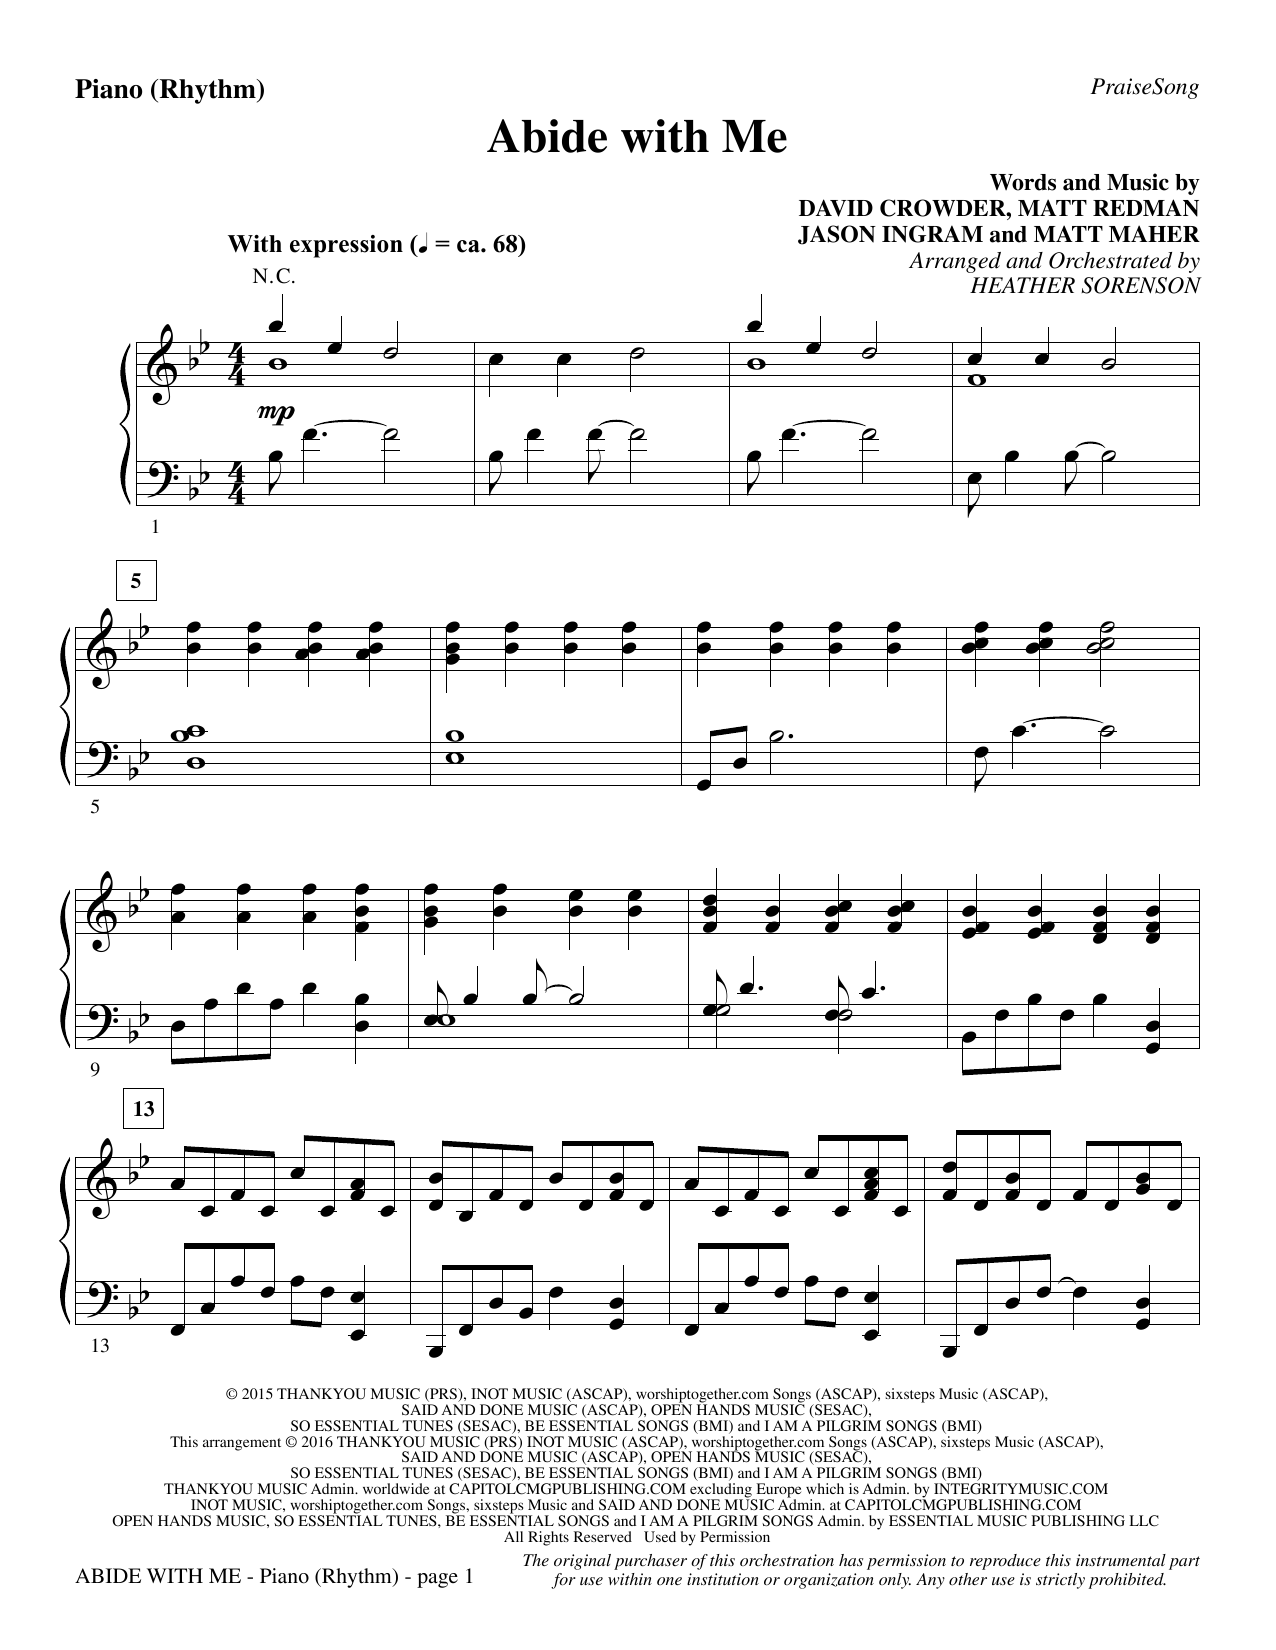 Abide with Me - Piano/Rhythm Sheet Music